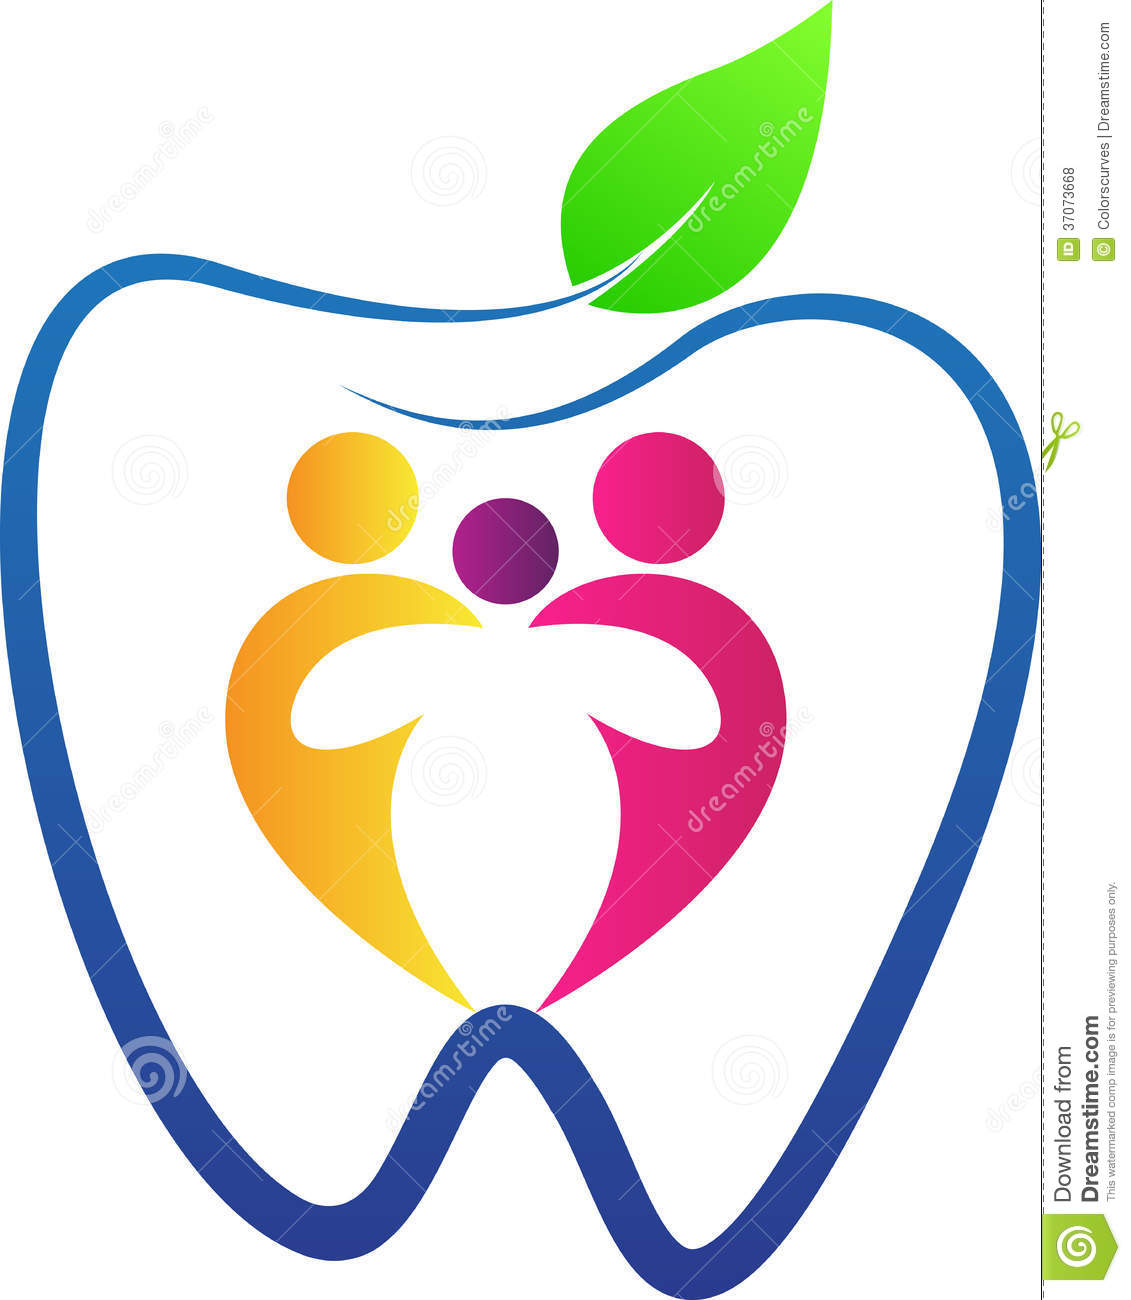 family-dental-care-vector-drawing-represents-design-37073668.jpg